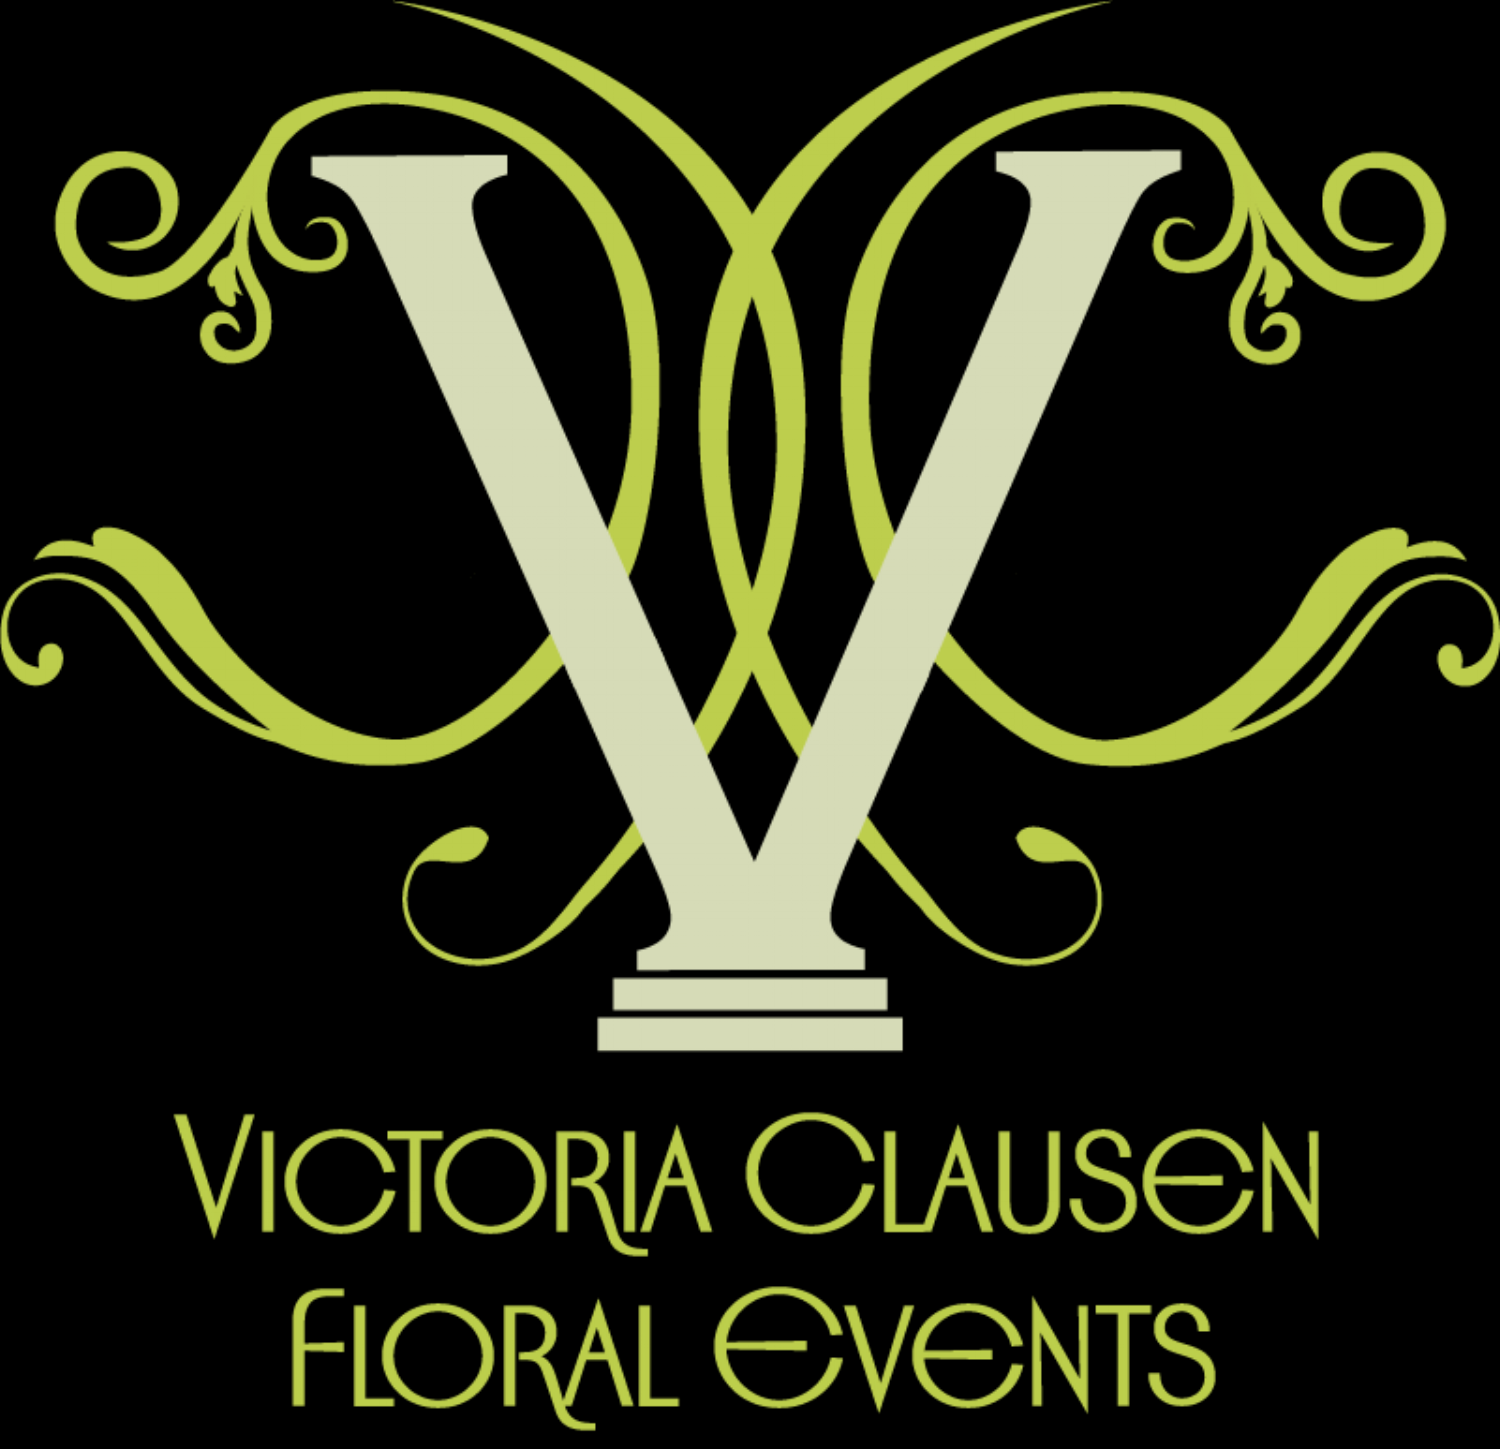 Victoria Clausen Floral Events